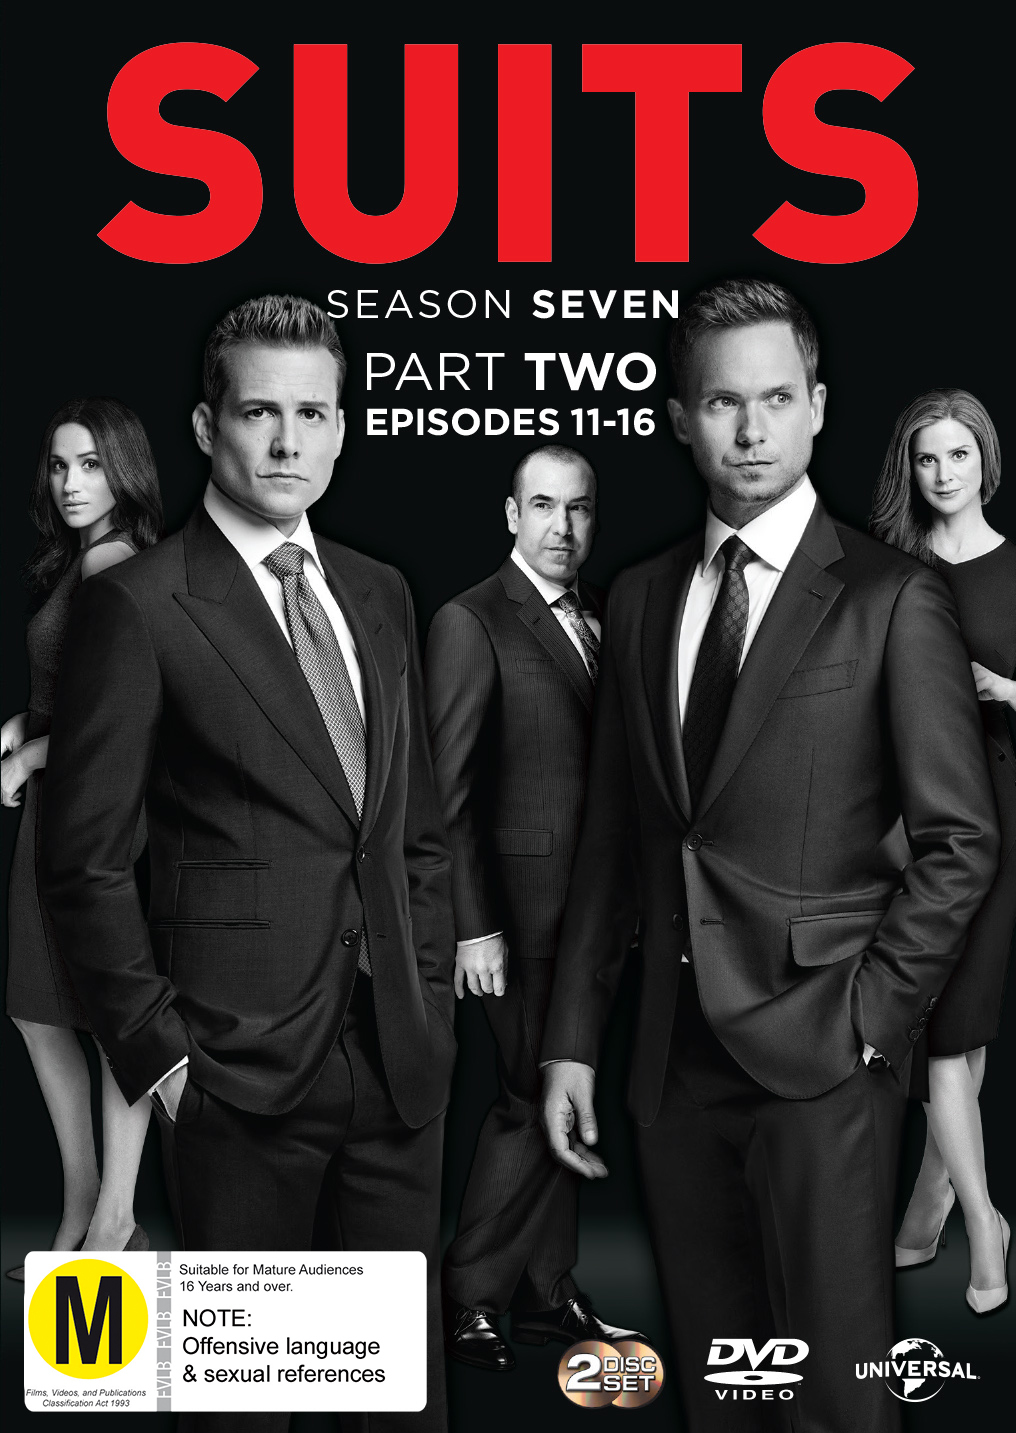 Suits: Season 7 Part 2 on DVD image